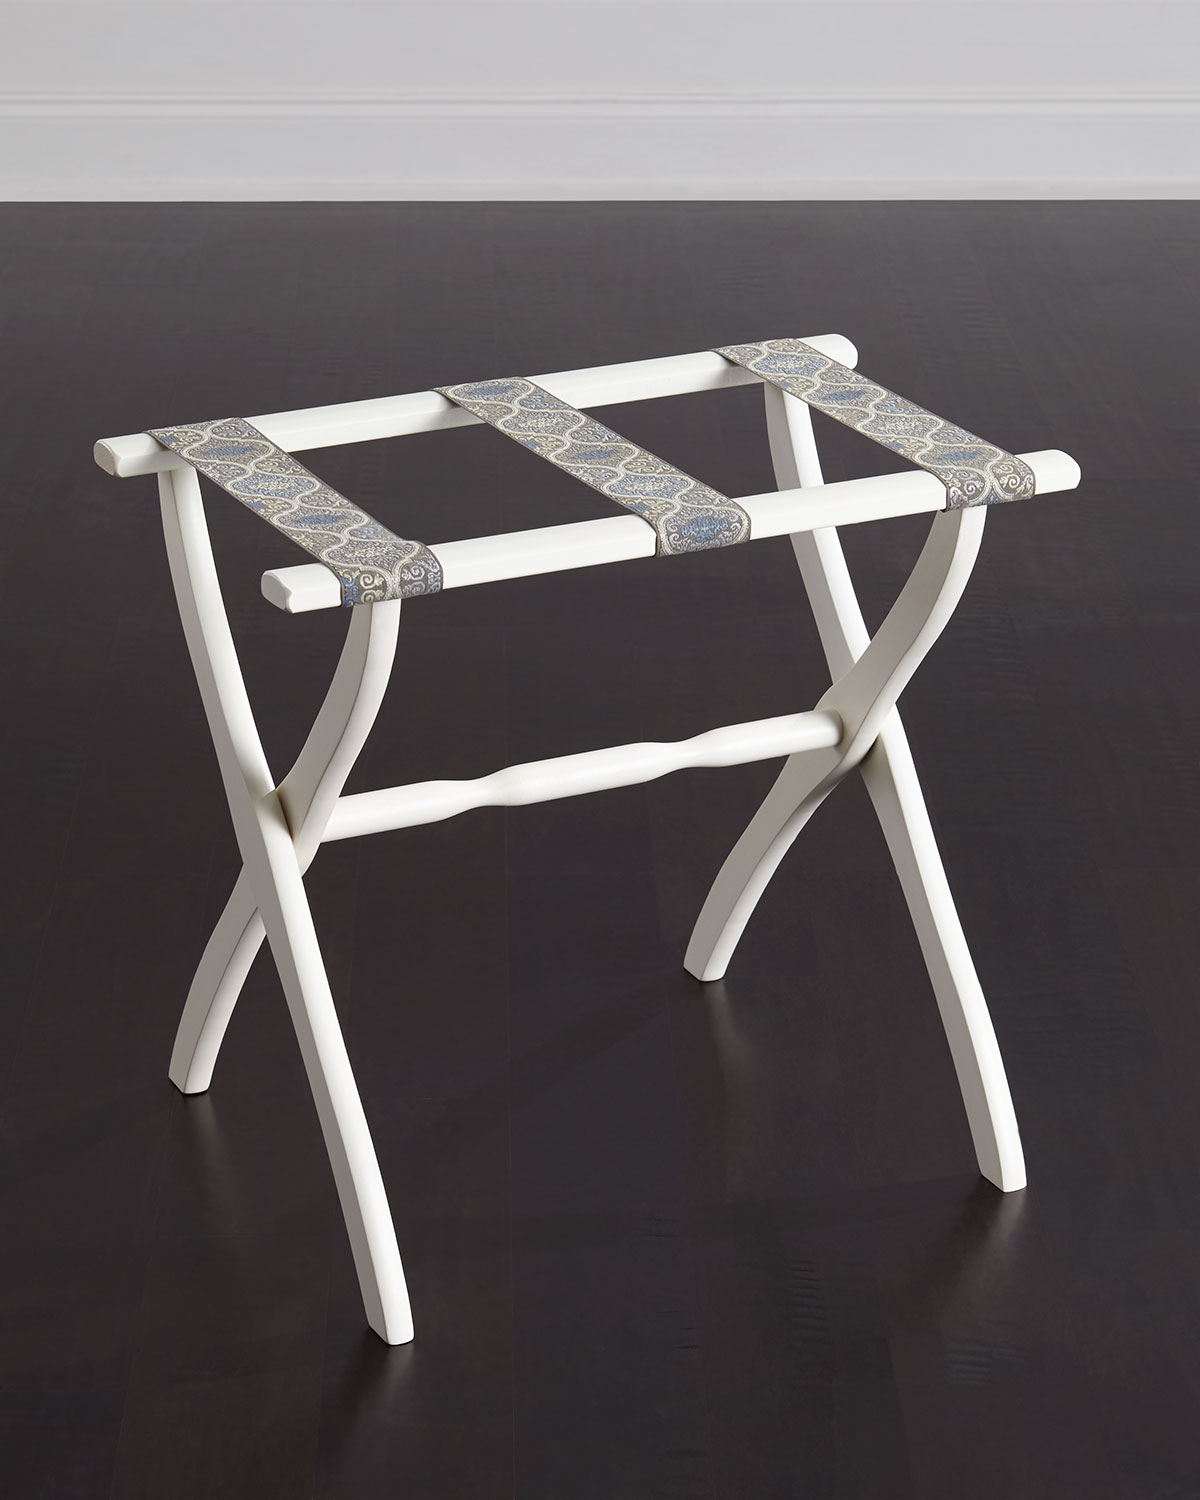 Luggage Rack with Versailles Detailing, Gray